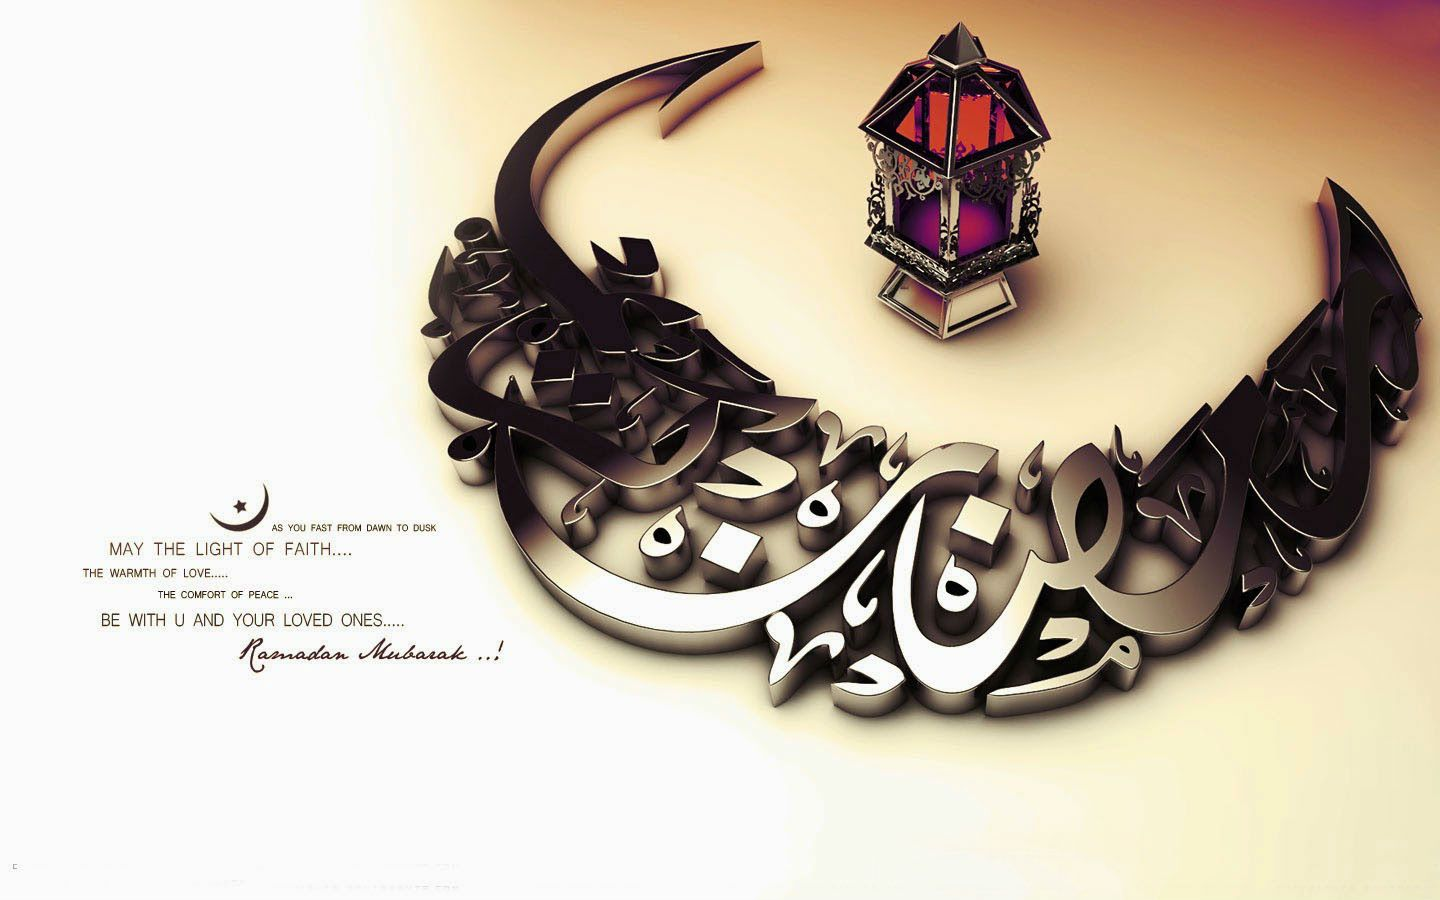 50+] Ramadan Mubarak In Arabic Wallpapers 2015